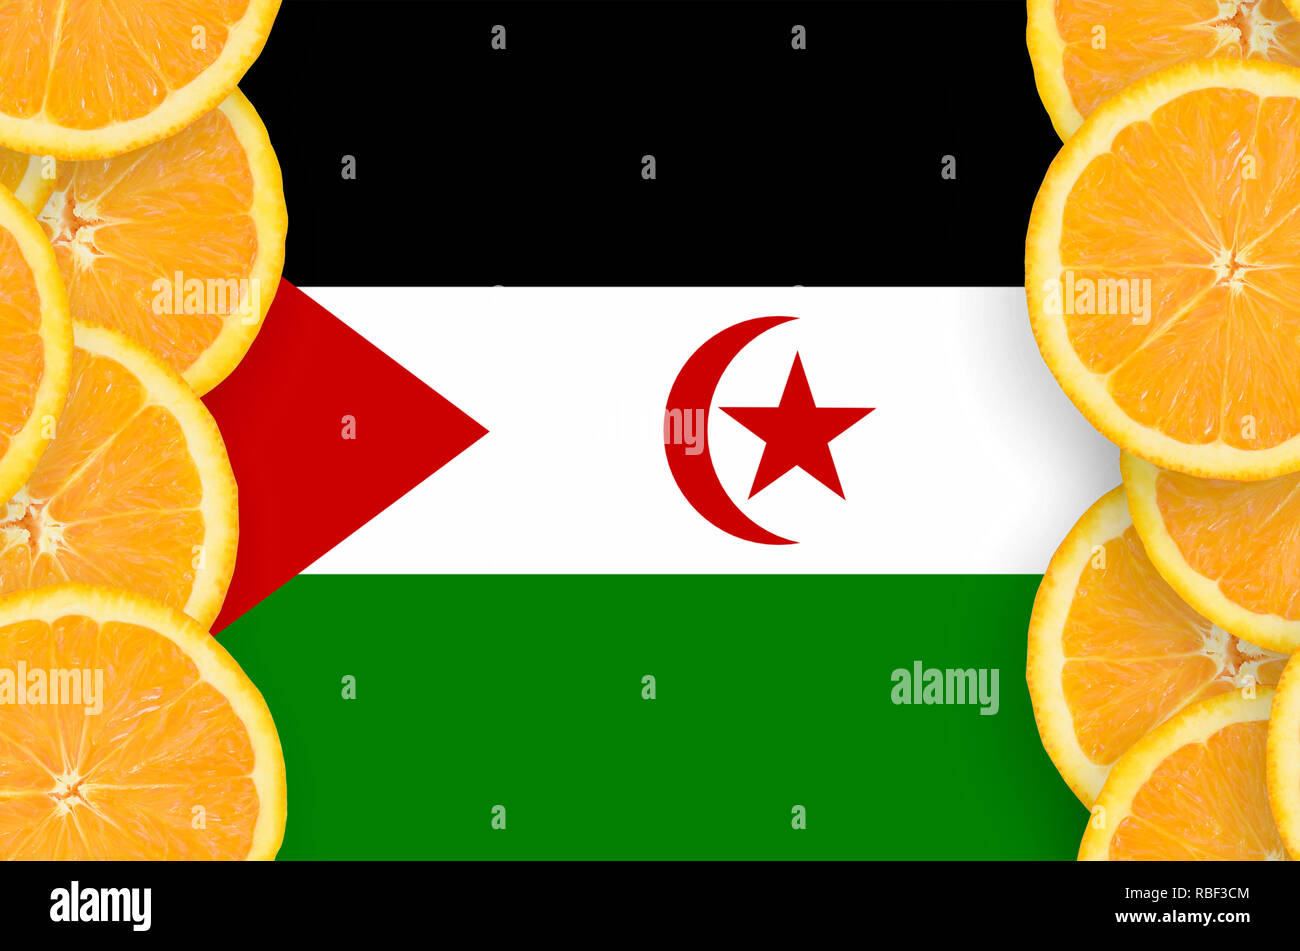 Western Sahara flag  in vertical frame of orange citrus fruit slices. Concept of growing as well as import and export of citrus fruits - Stock Image